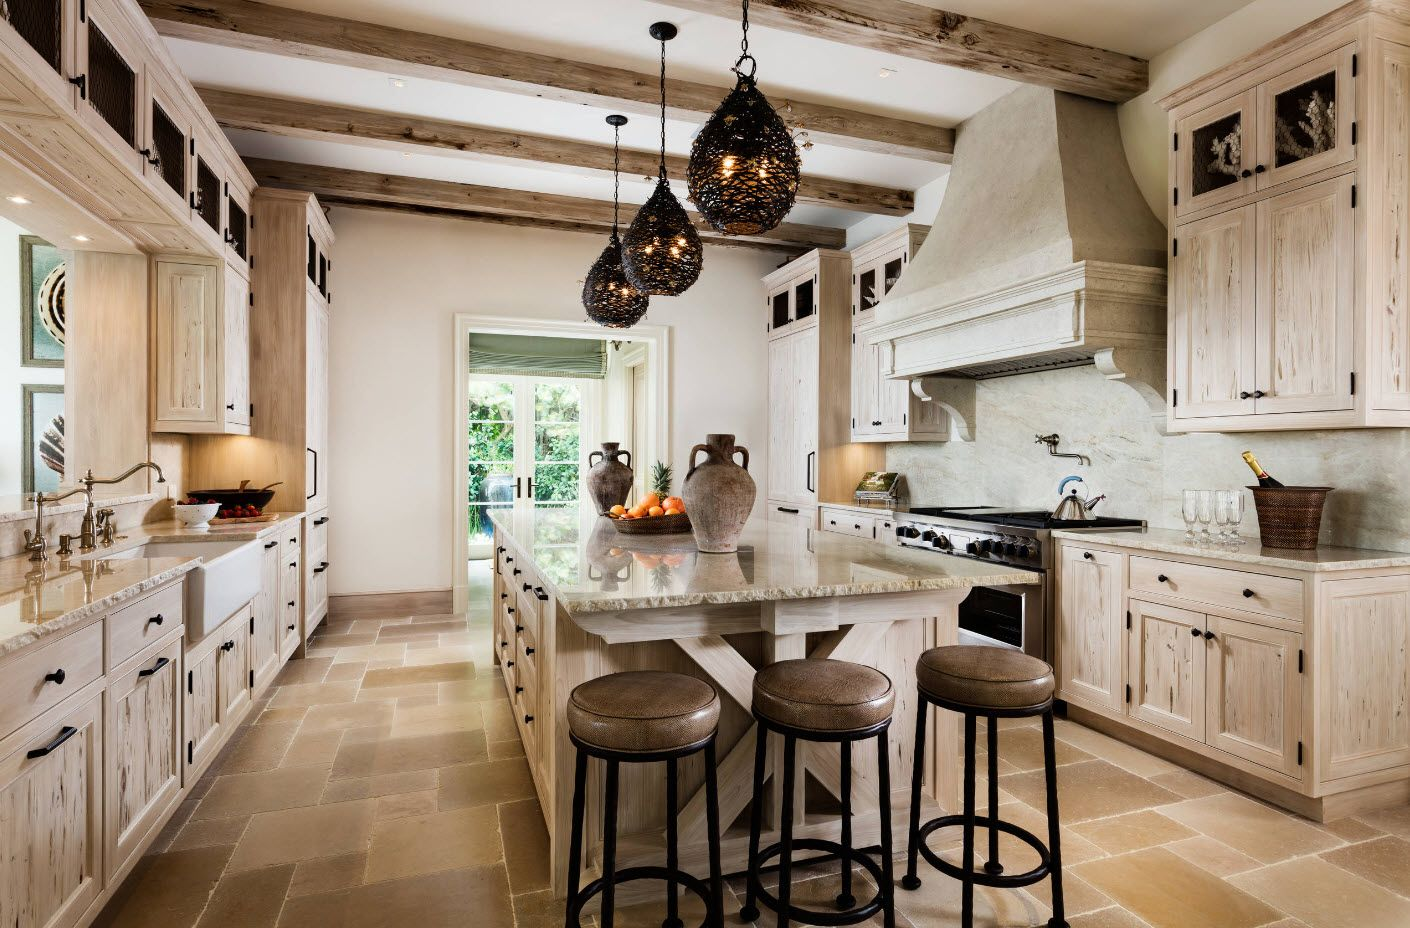 Elongated glossy kitchen island in the Rustic style